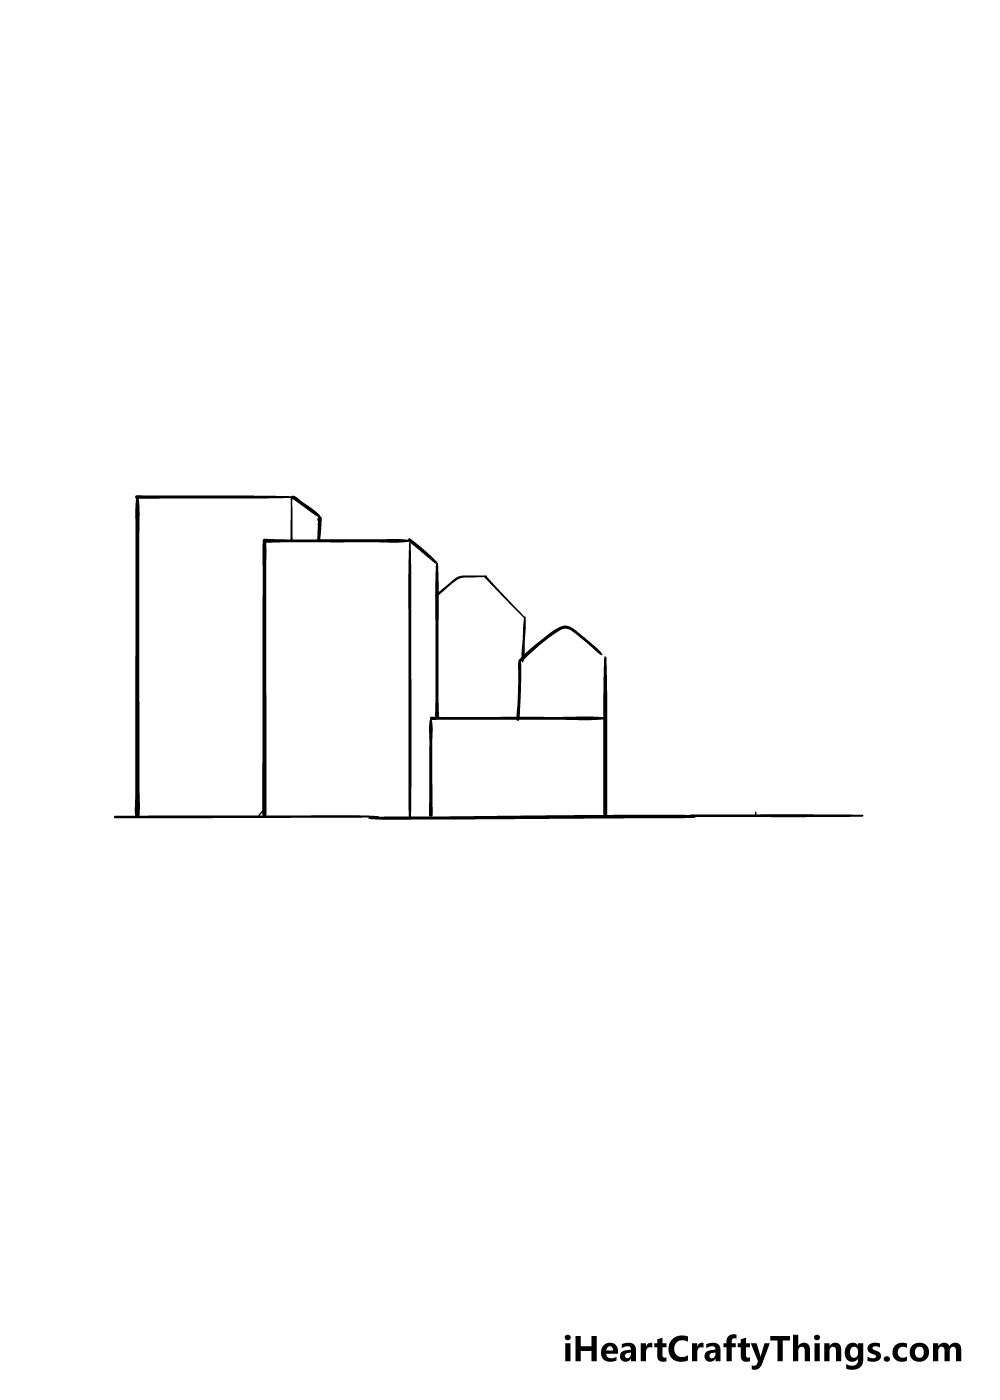 drawing a city step 2